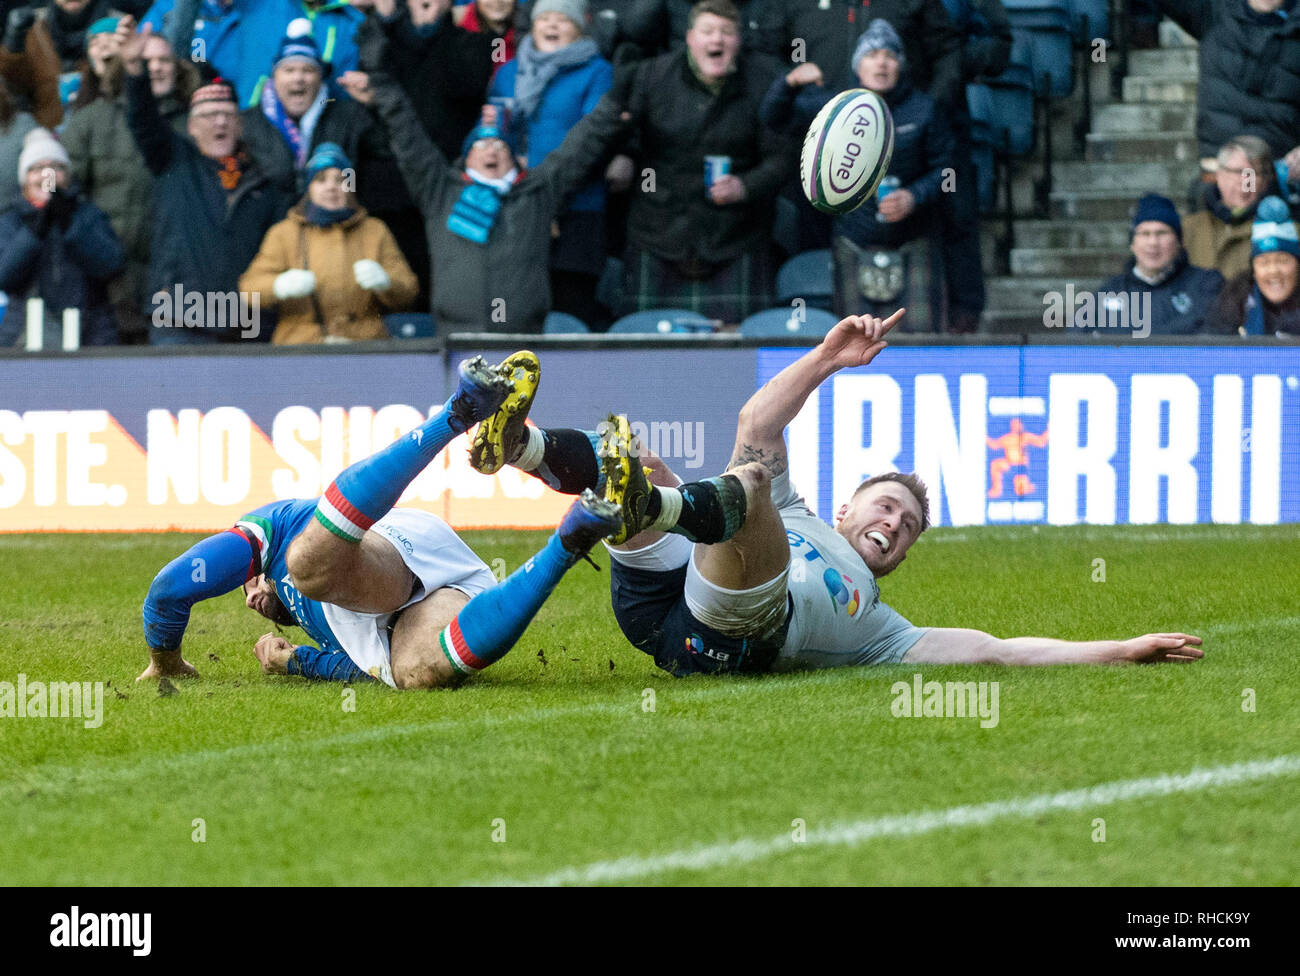 Scotland, UK. 2nd Feb 2019. : Scotland Full-Back, Stuart Hogg, grounds the ball to score  during the second half as Scotland play host to Italy in their opening game of the 2019 6 Nations Championship at Murrayfield Stadium, Edinburgh on February 2nd, 2019.  (Photo by Ian Jacobs) Credit: Ian Jacobs/Alamy Live News Credit: Ian Jacobs/Alamy Live News Stock Photo